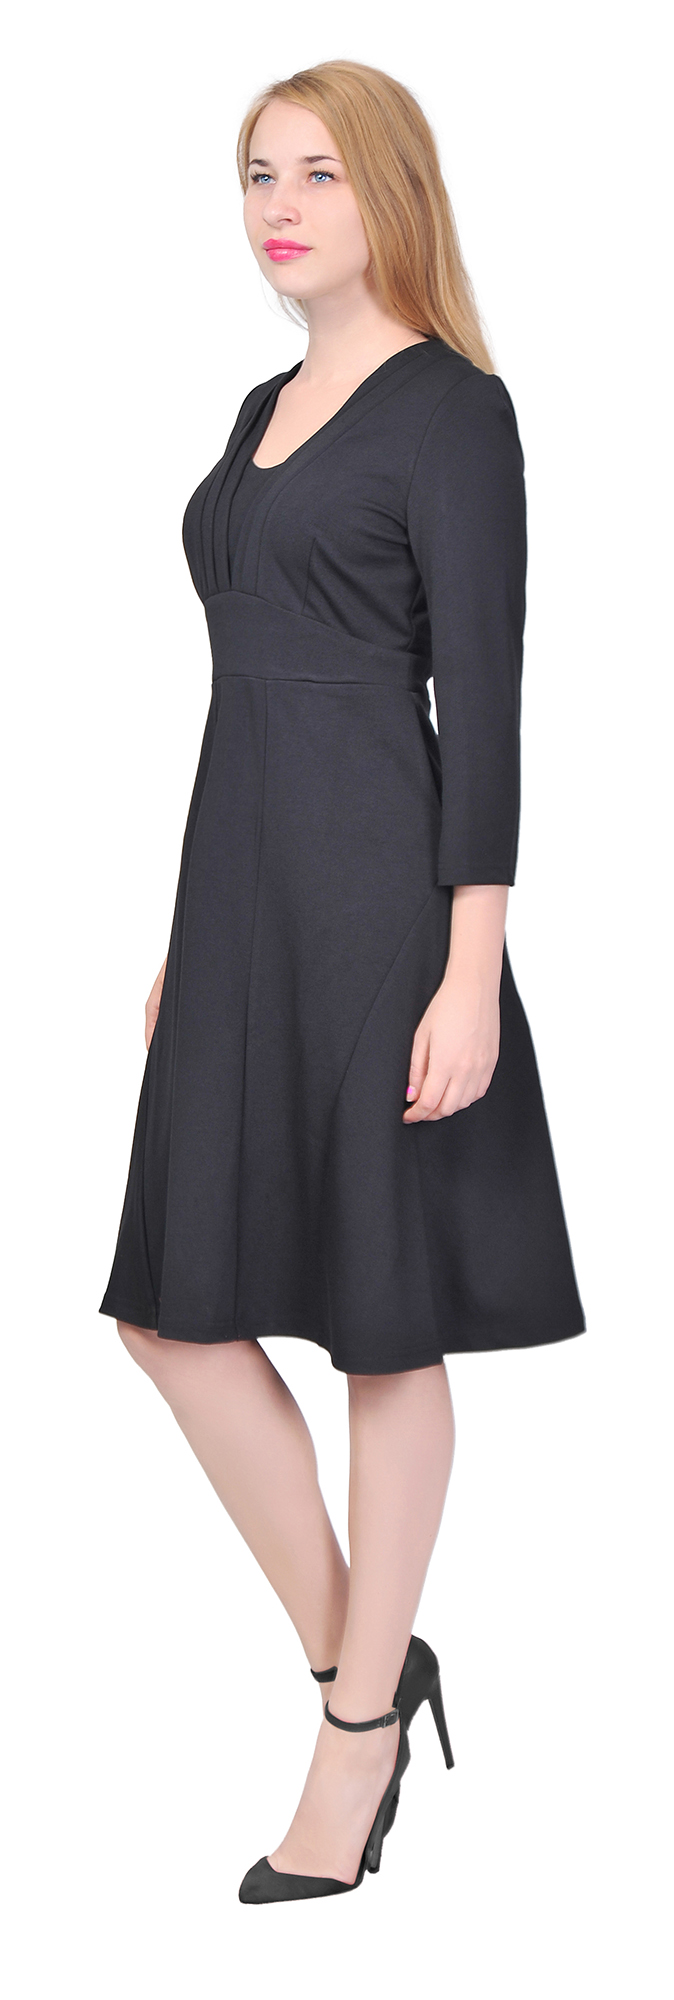 Marycrafts Womens Vintage A Line Midi Dress Formal Cocktail Work